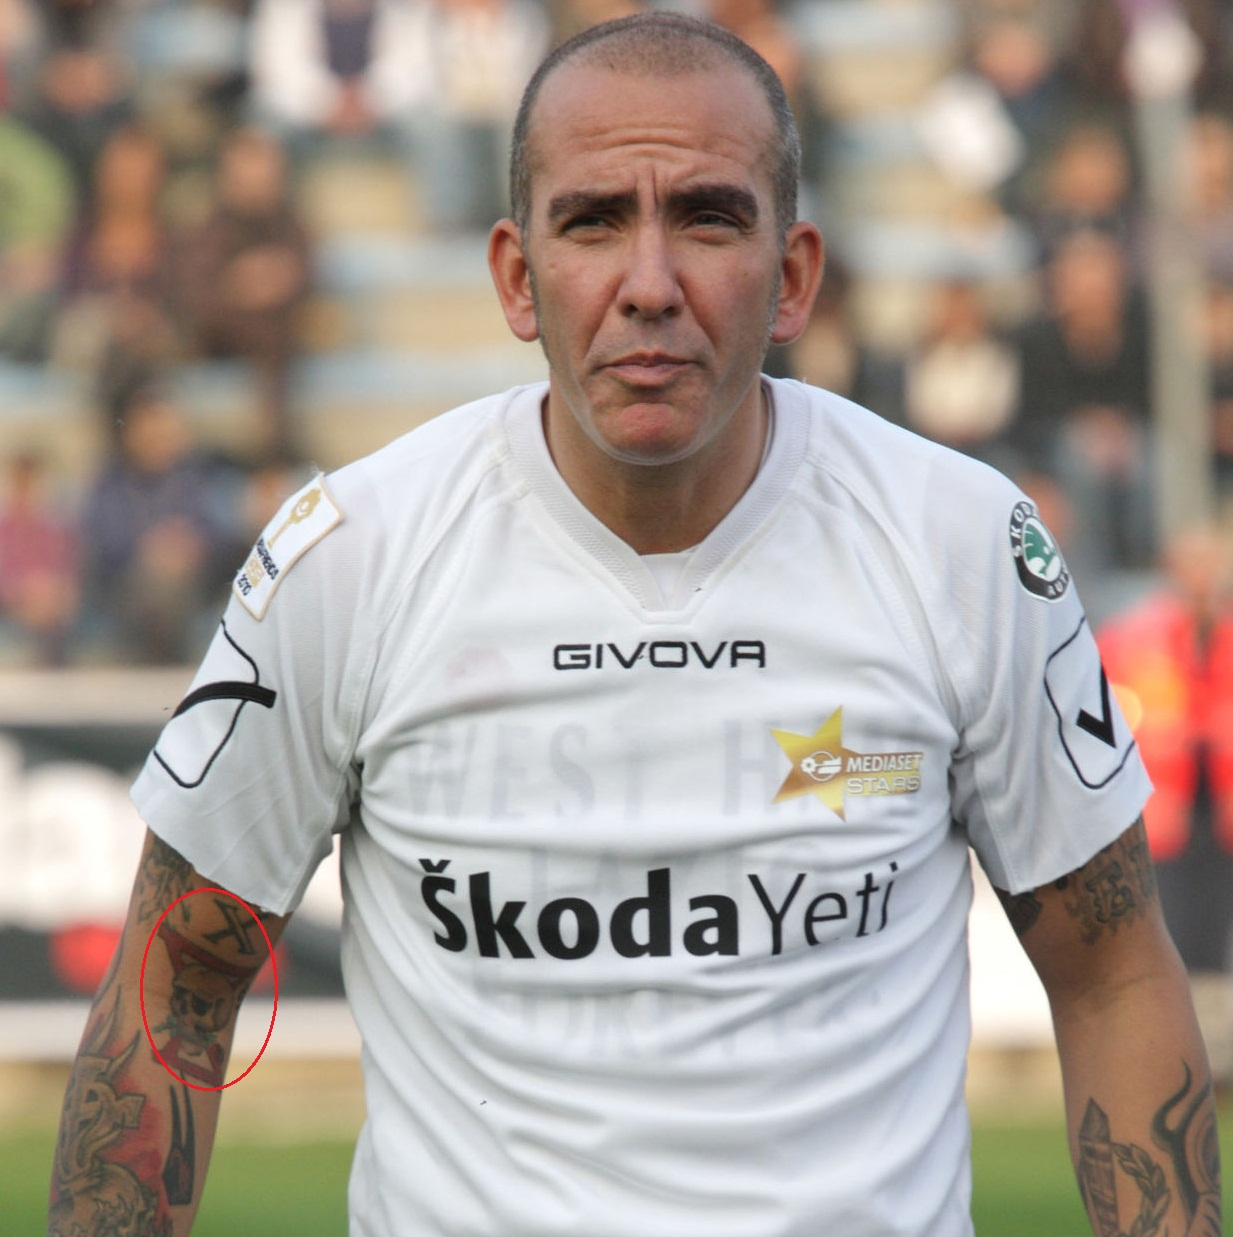 Paolo Di Canio right arm skull tattoo